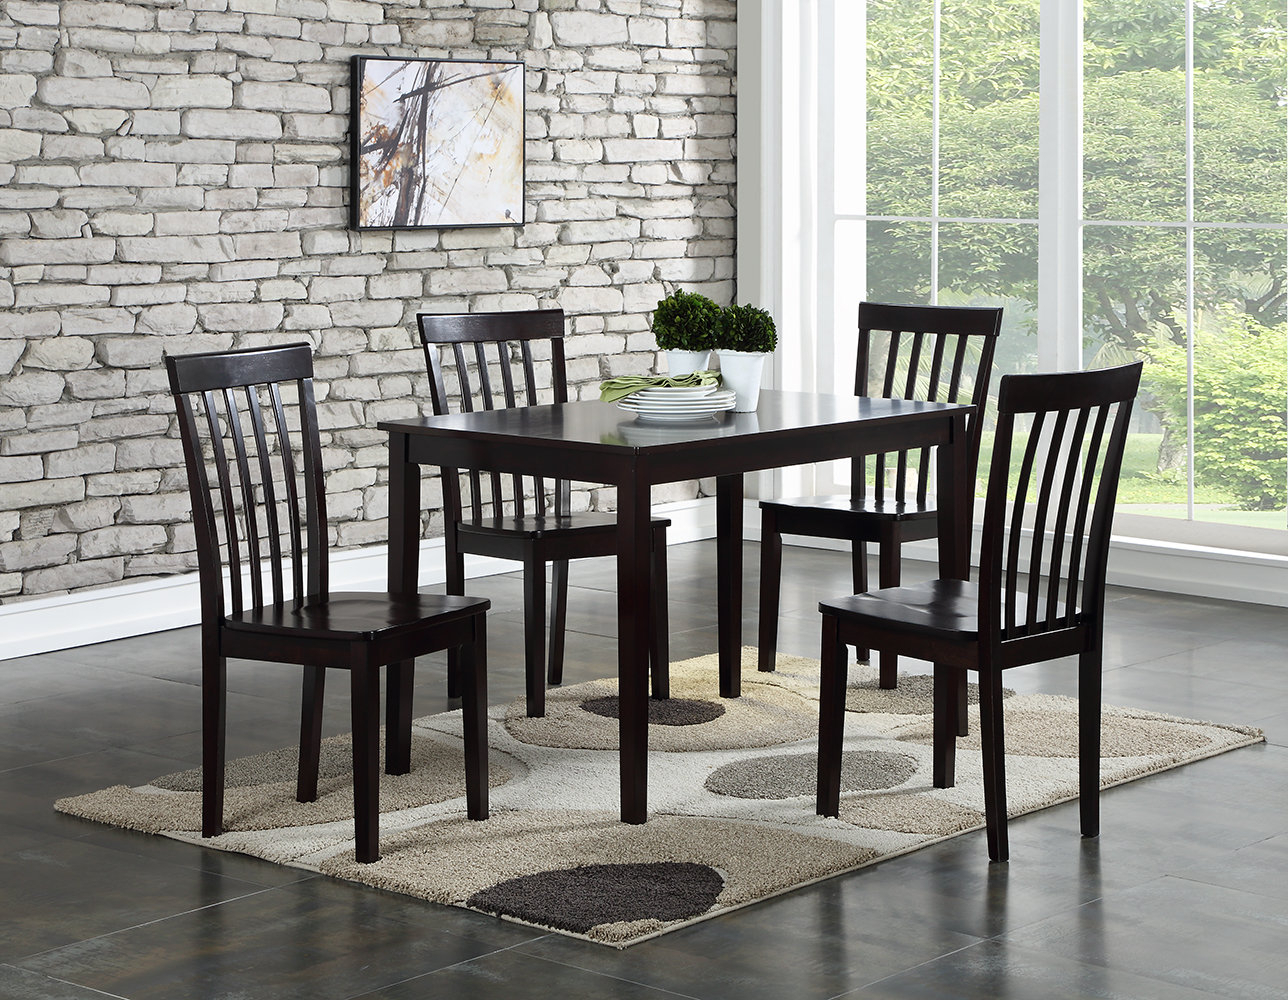 Widely Used Ralls 5 Piece Dining Set & Reviews (View 12 of 25)